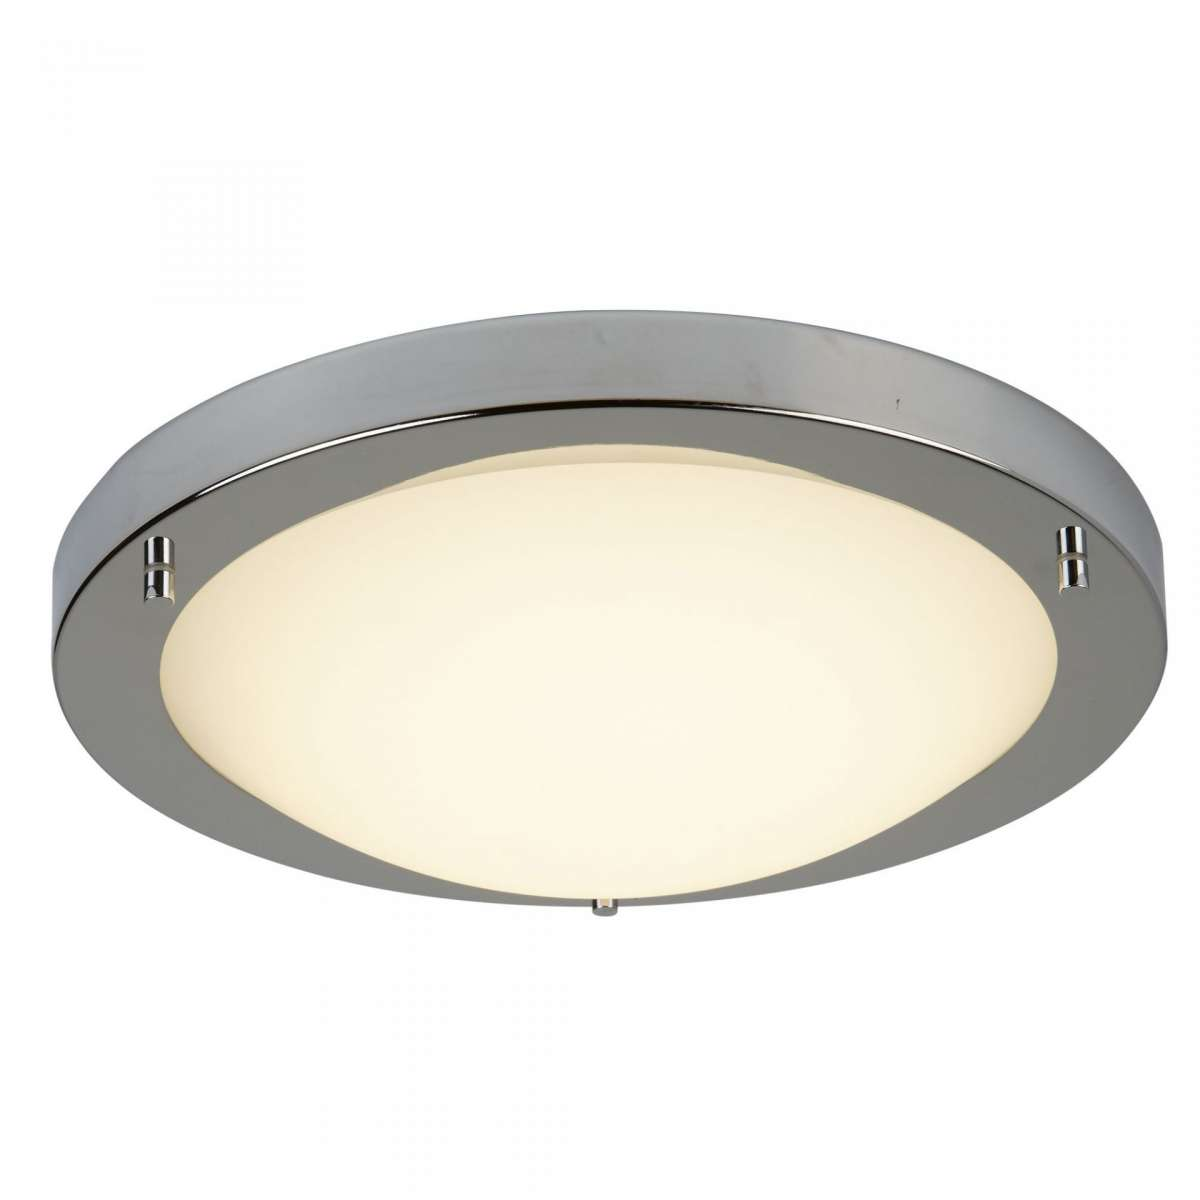 12W LED Flush Satin Silver Fitting with Opal Glass